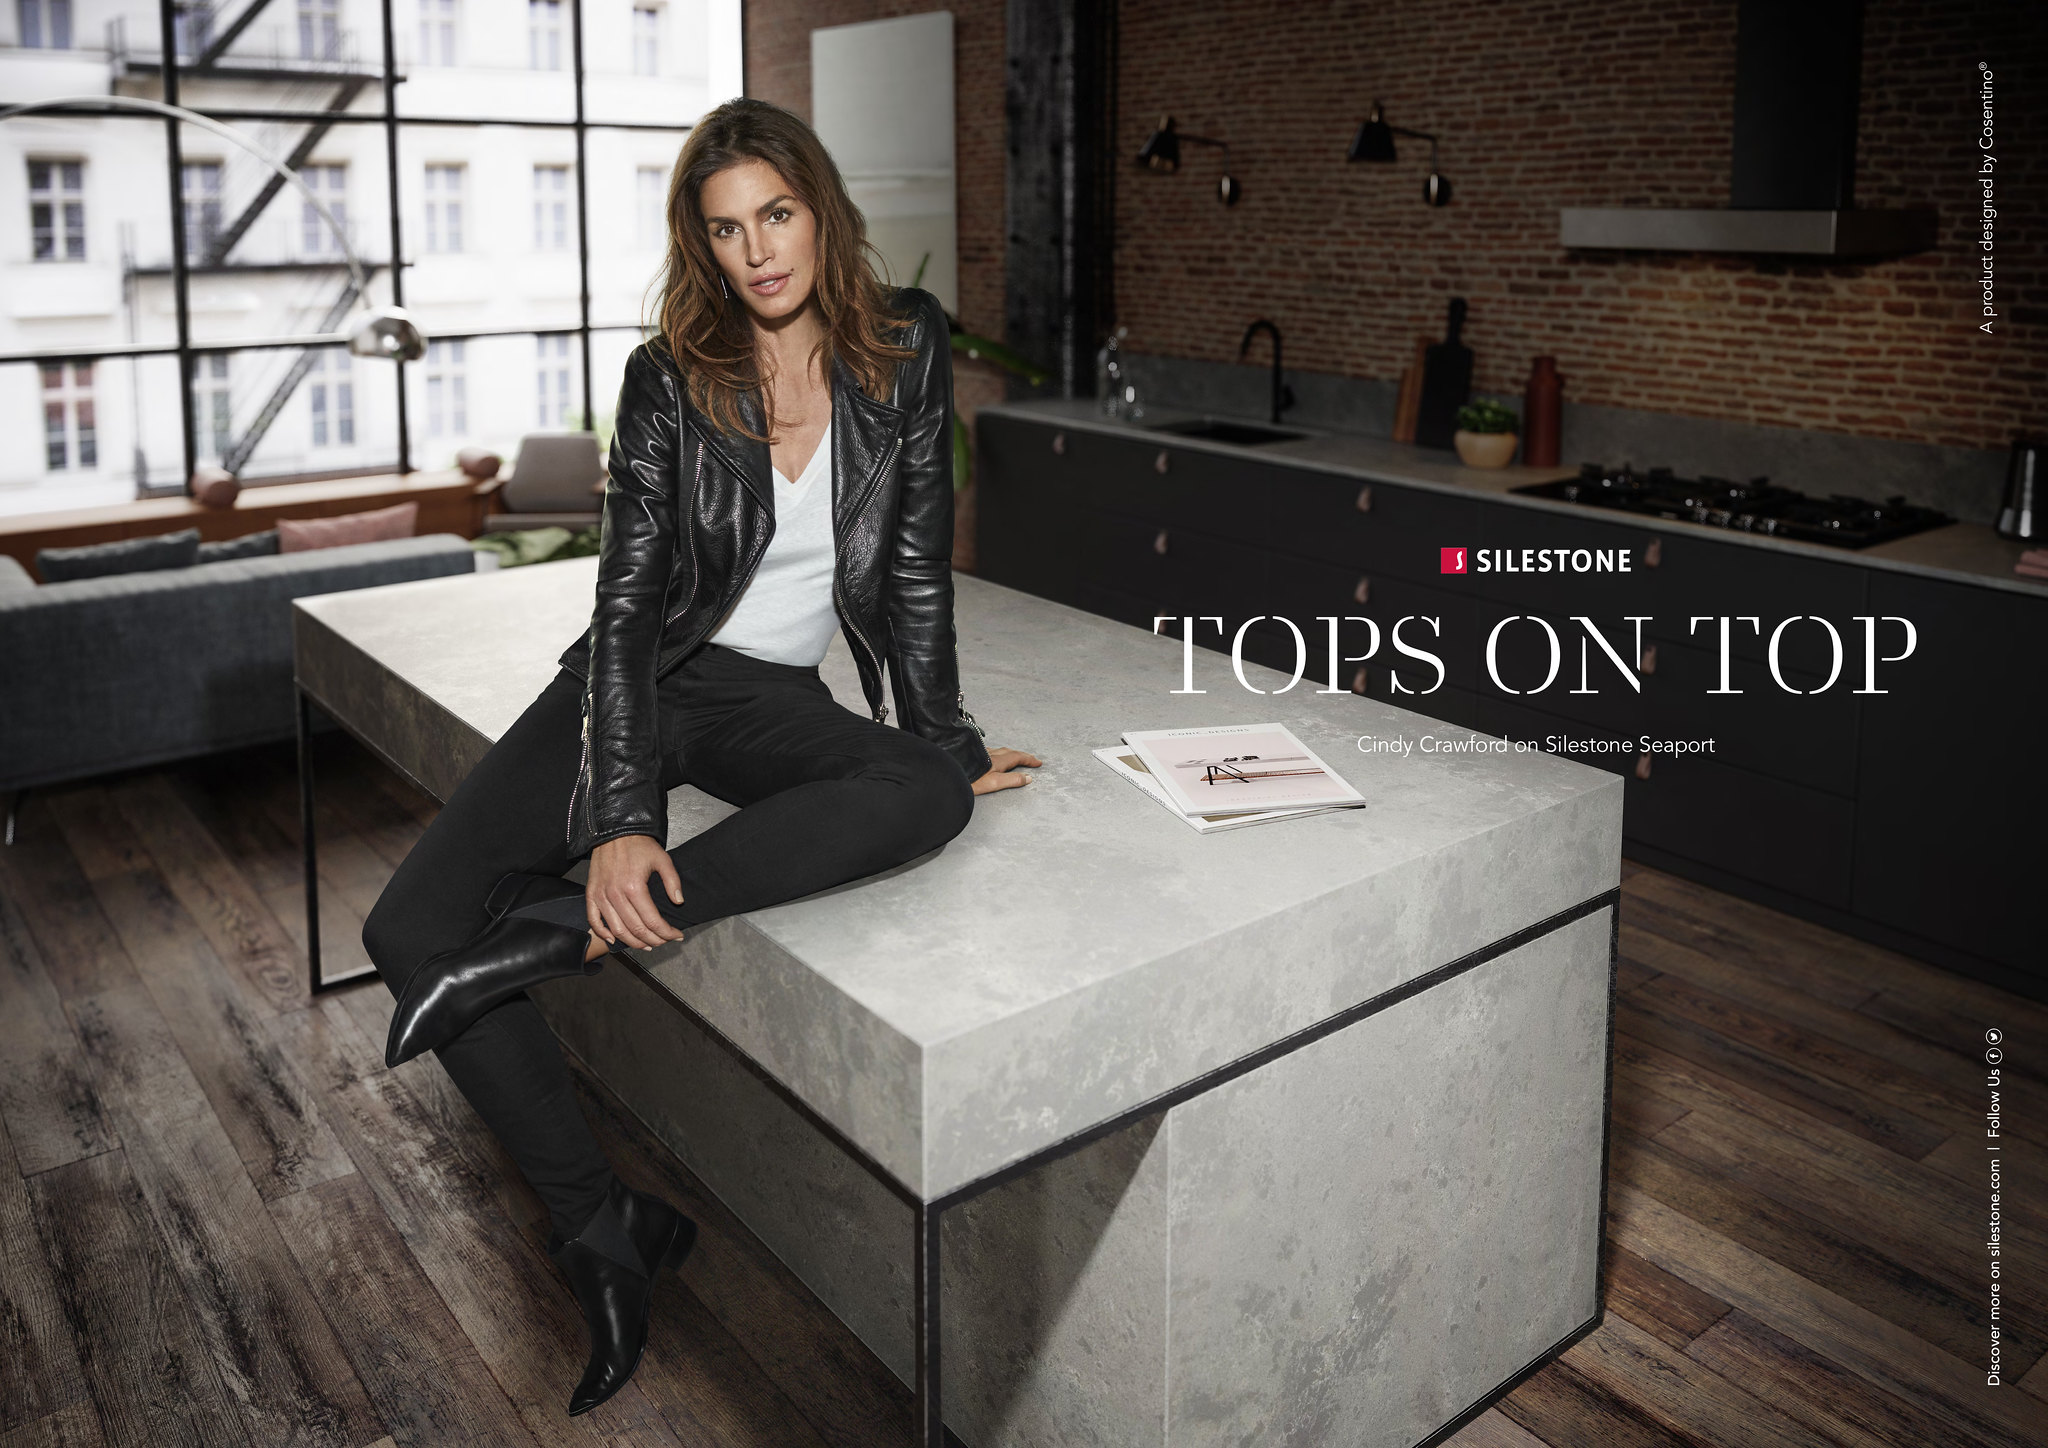 Tops on Top|GCI